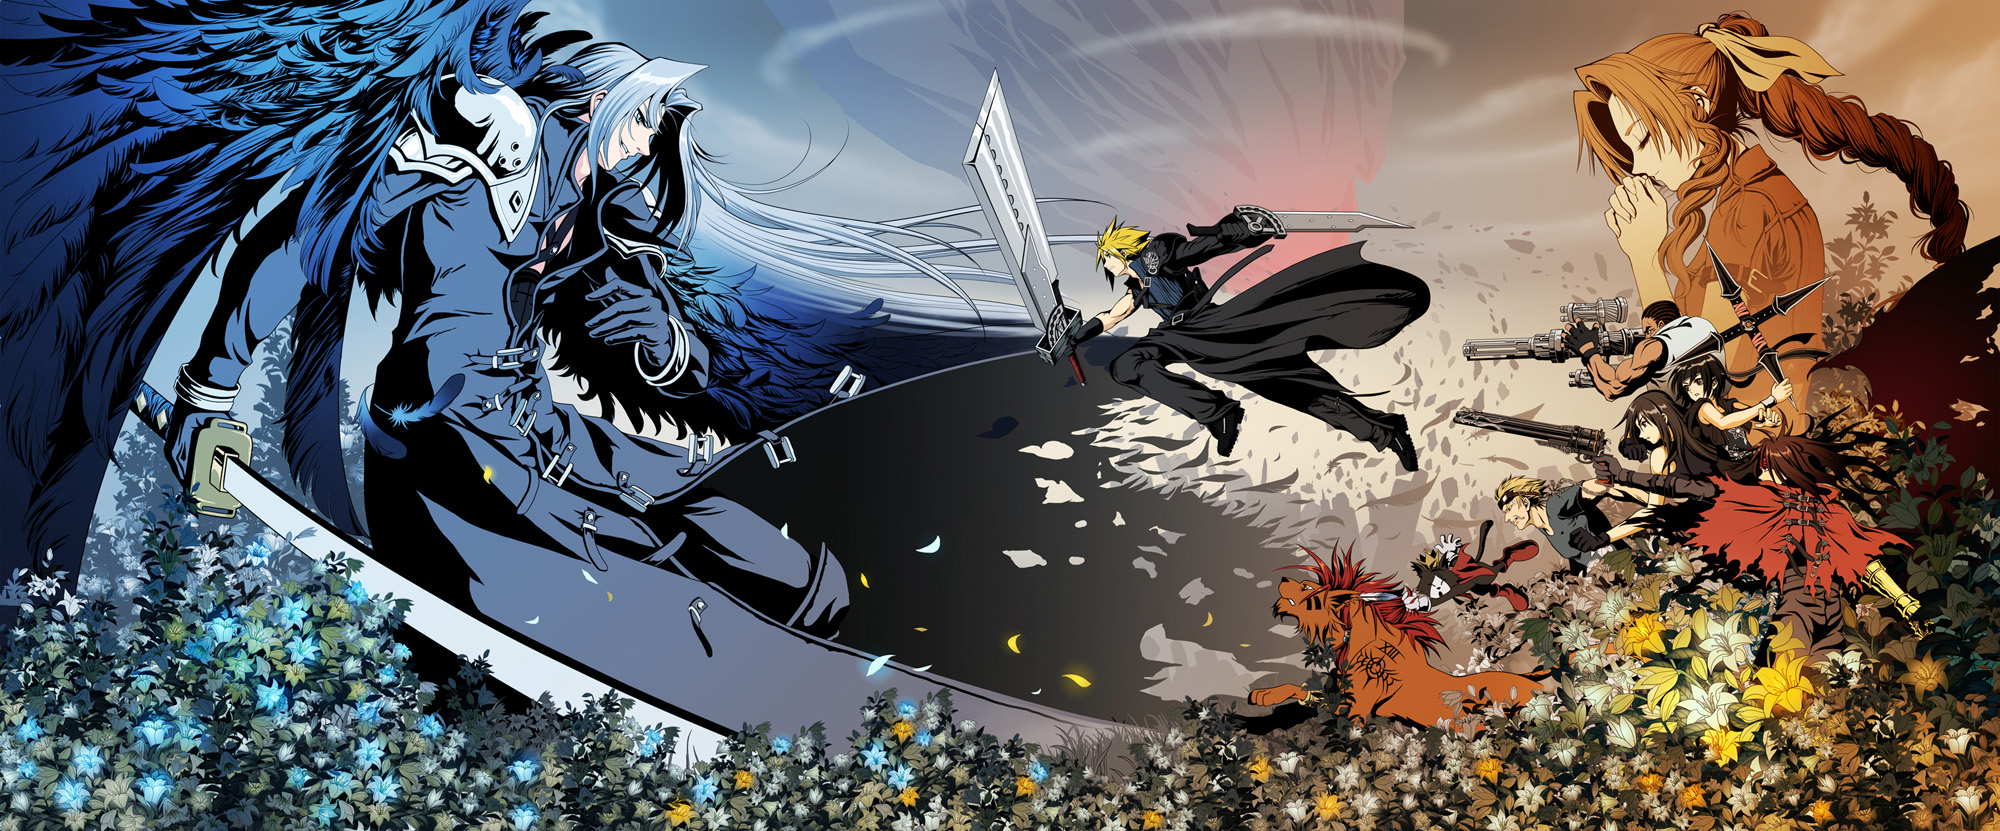 aerith_gainsborough animal barret_wallace blonde_hair blue_eyes blue_hair brown_eyes brown_hair cait_sith cat cid_highwind cloud_strife feathers final_fantasy final_fantasy_vii final_fantasy_vii_advent_children flowers glasses gun long_hair petals red_xiii sephiroth sword tattoo tifa_lockhart vincent_valentine weapon wings yuffie_kisaragi